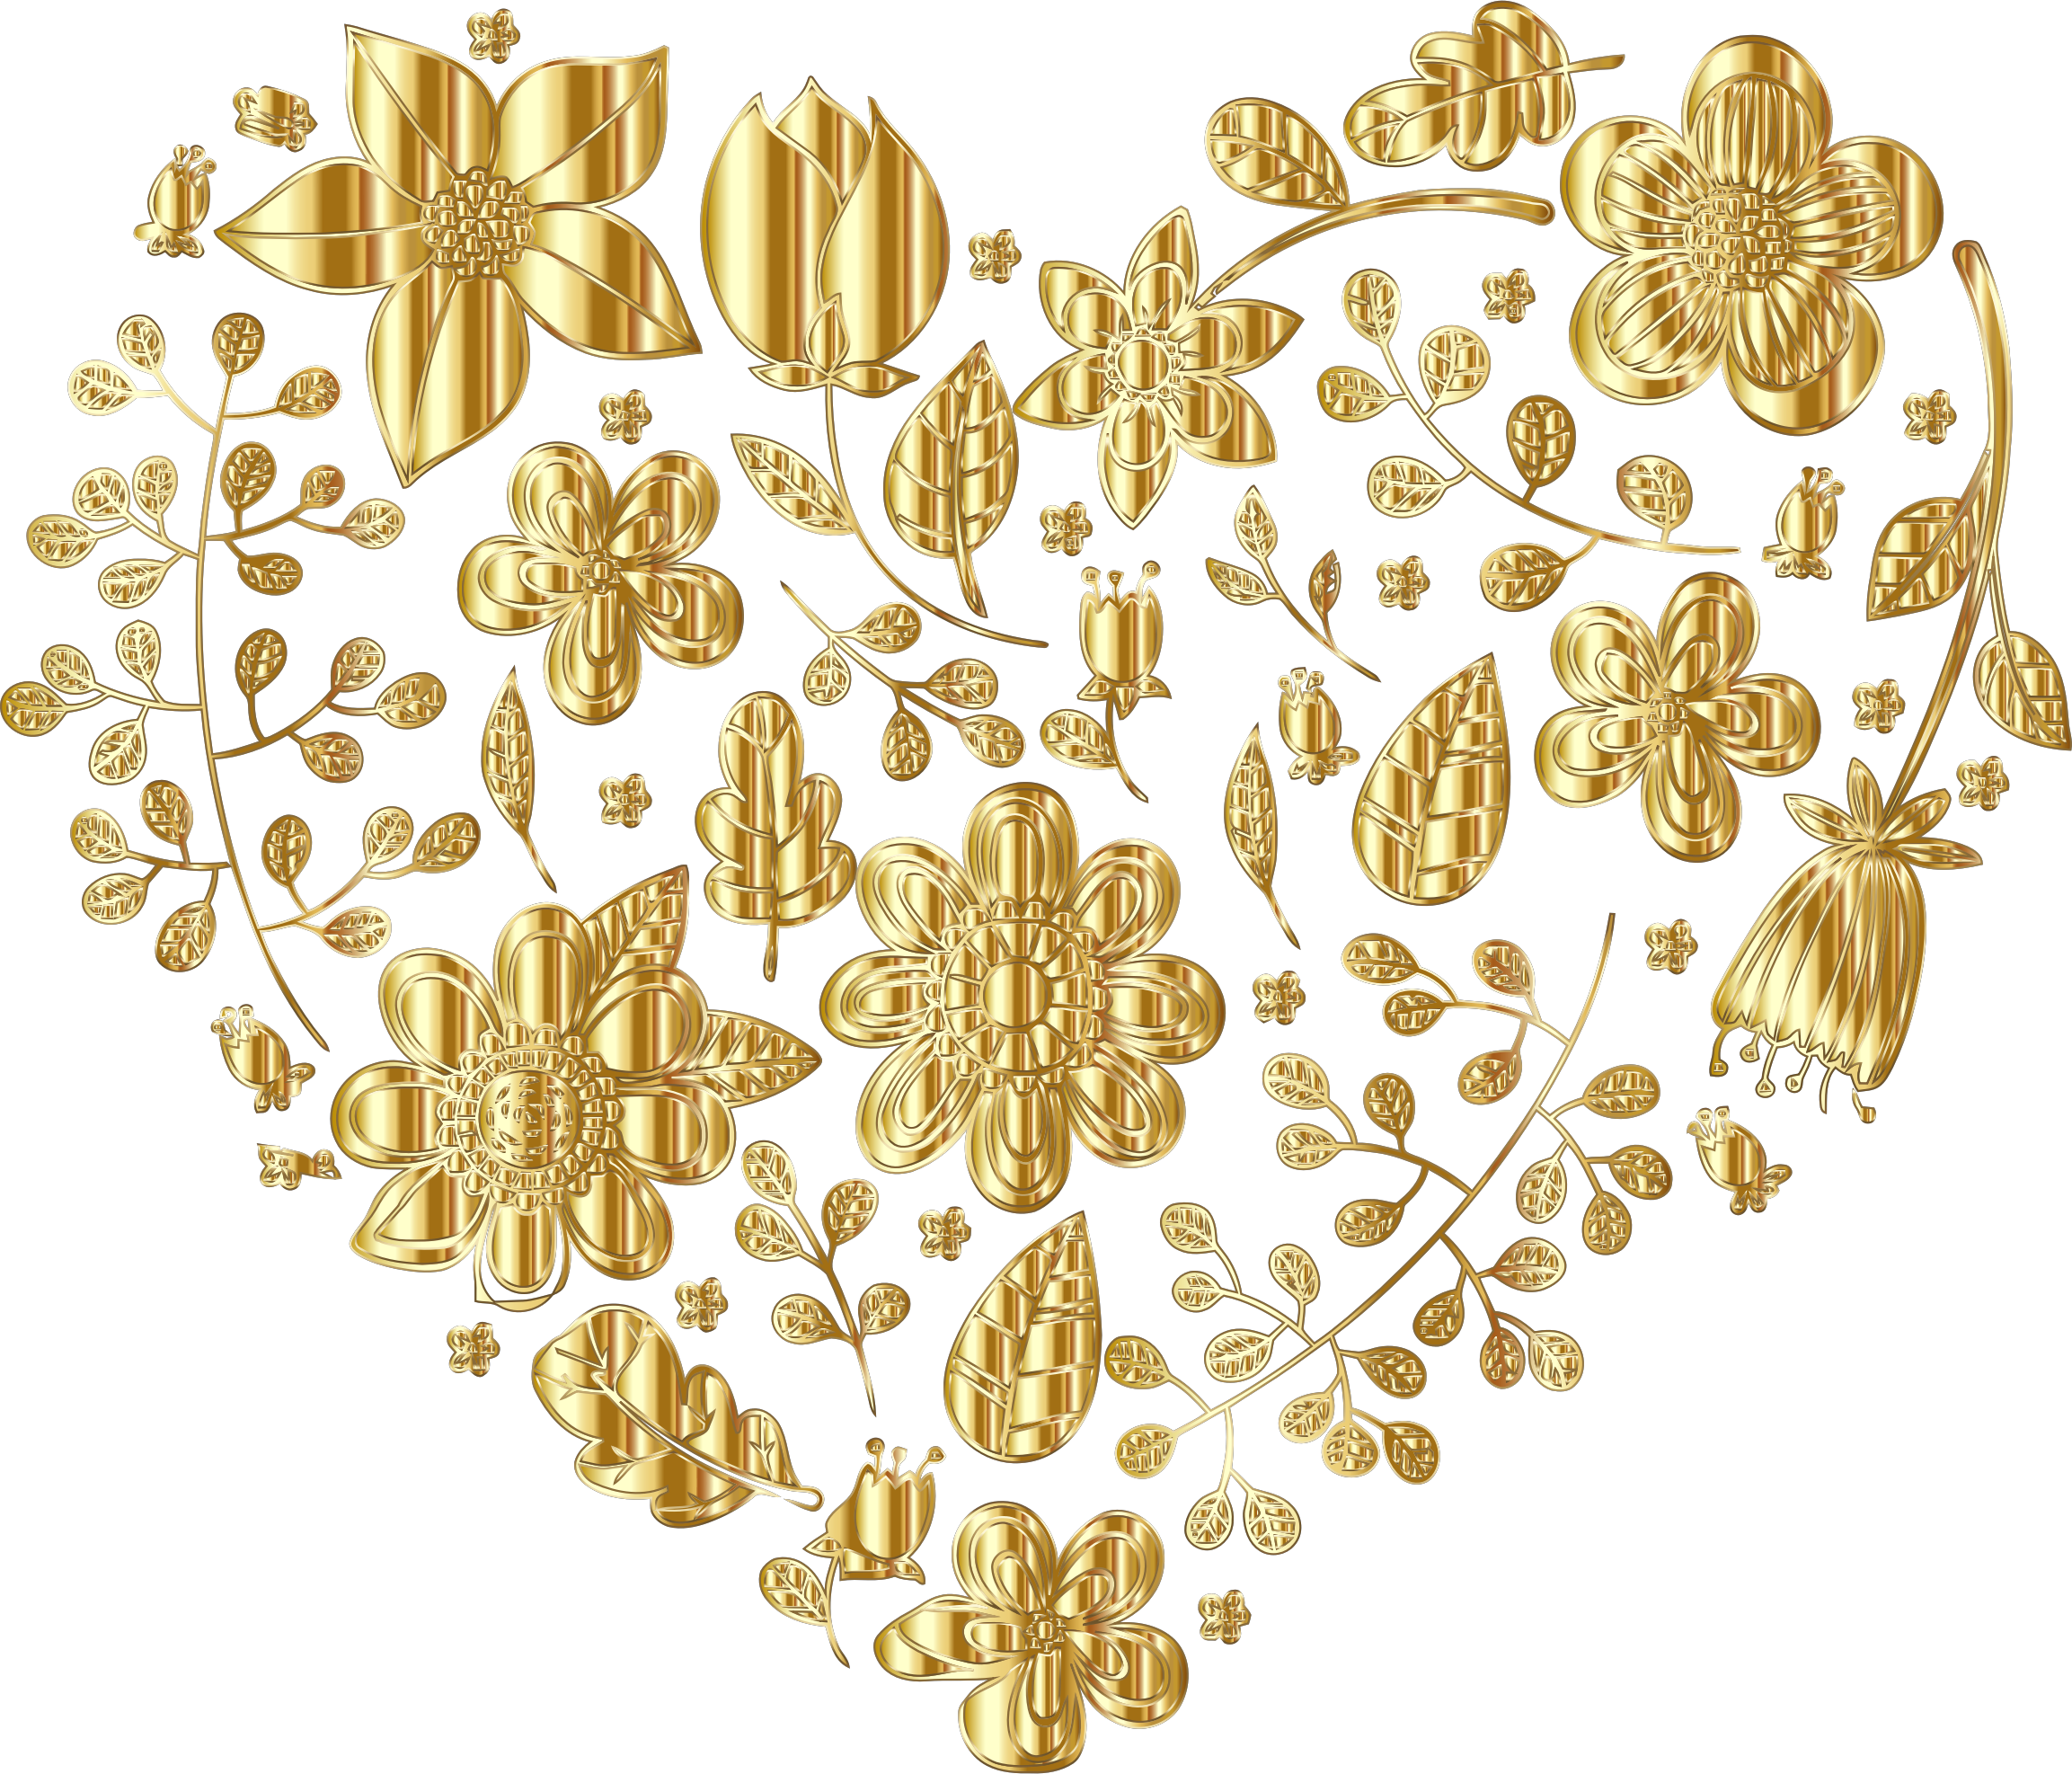 Gold Floral Heart Variation 2 No Background by GDJ